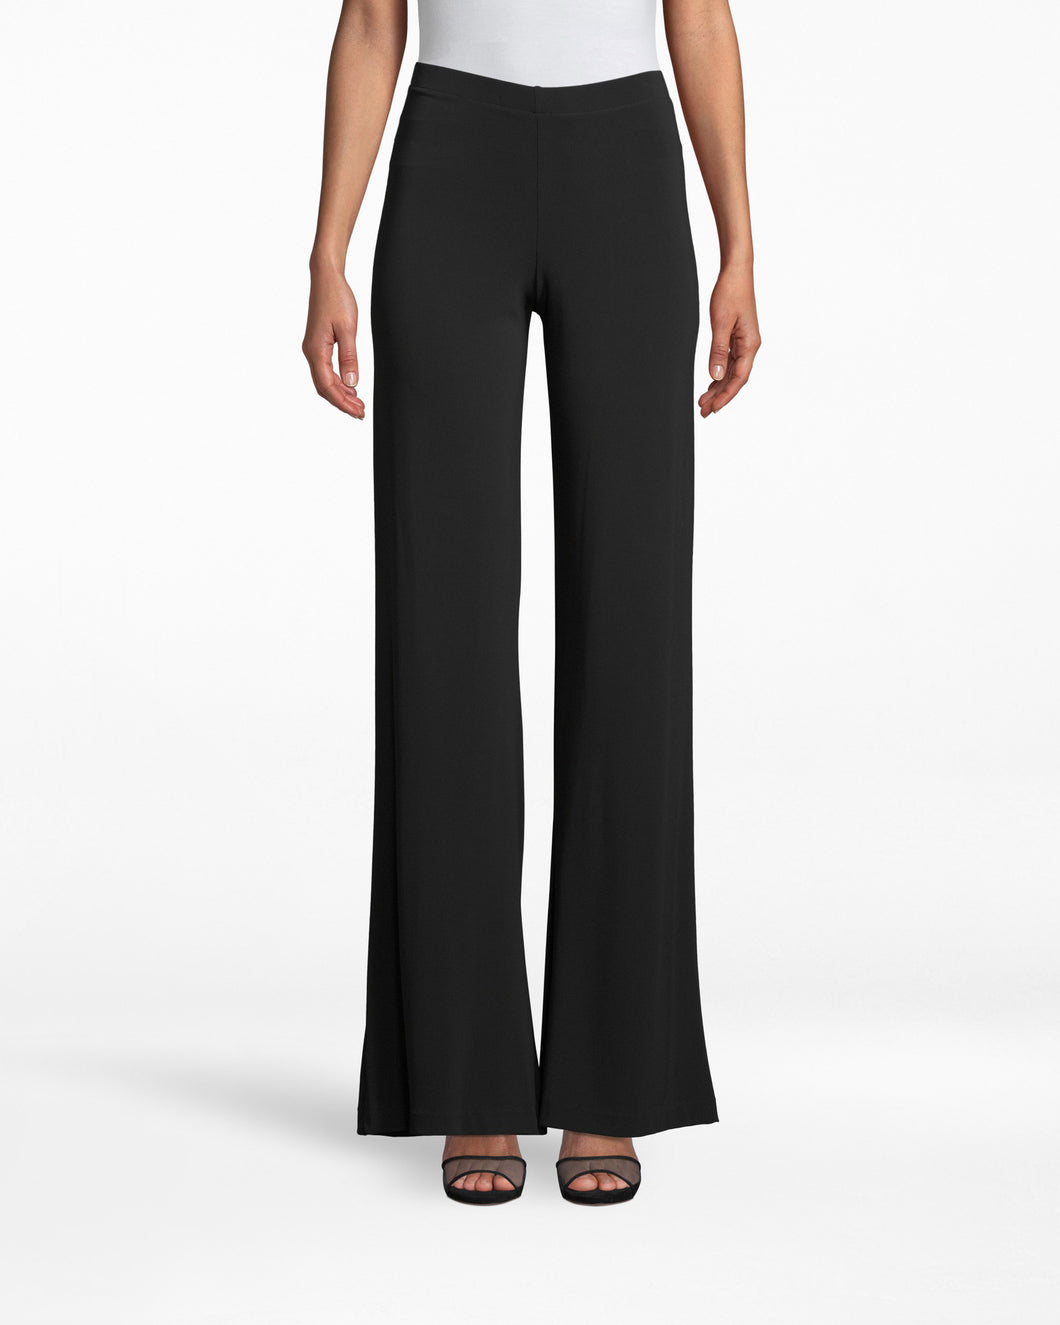 Nicole Miller Stretchy Matte Jersey Emma Pant